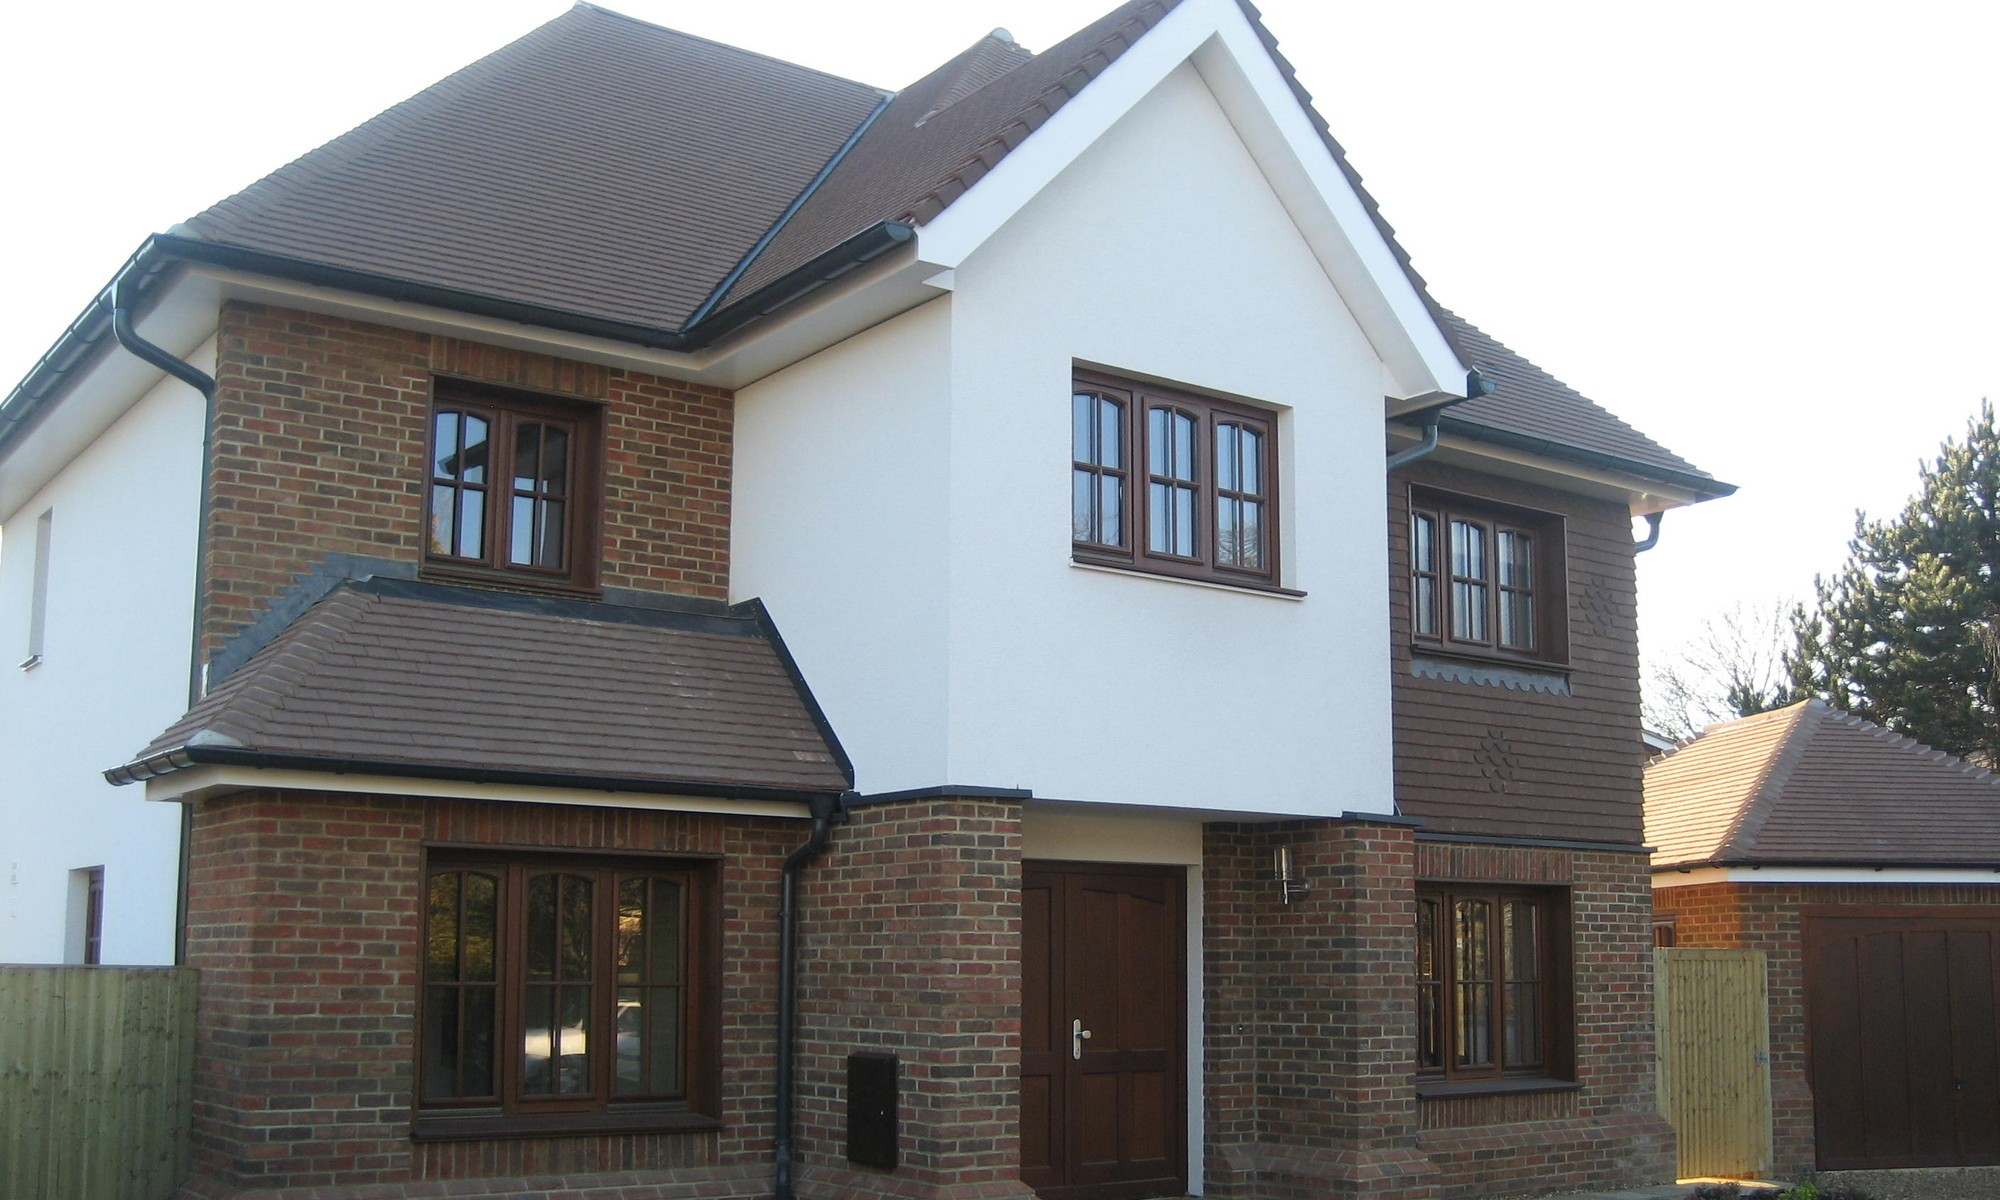 Four-storey prefab home in traditional style, with basement cinema room, in Buckinghamshire